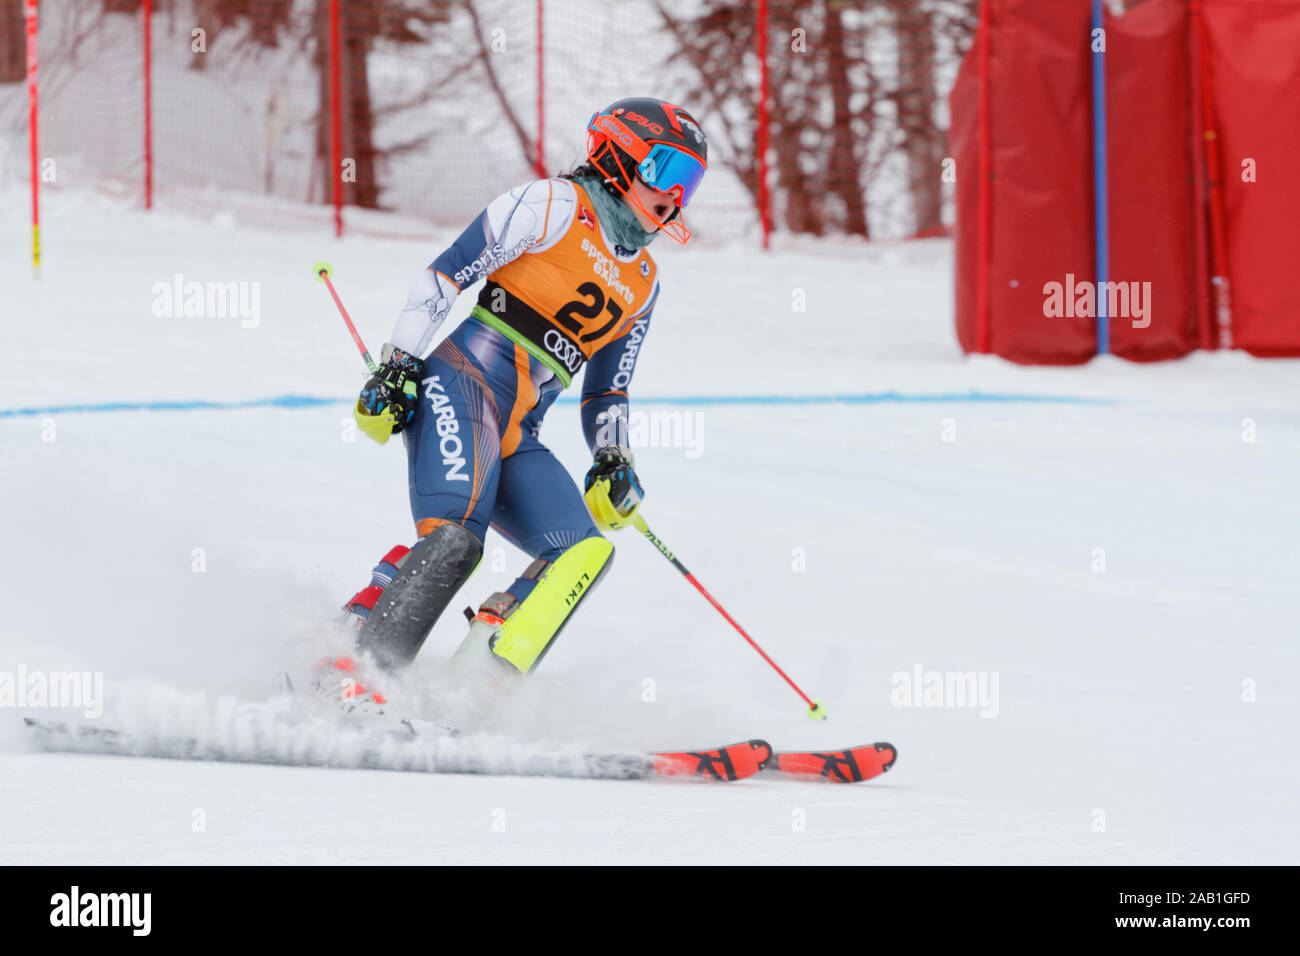 Quebec,Canada. A skier competes in the Super Serie Sports Experts Ladies slalom race held at Val Saint-Come Stock Photo